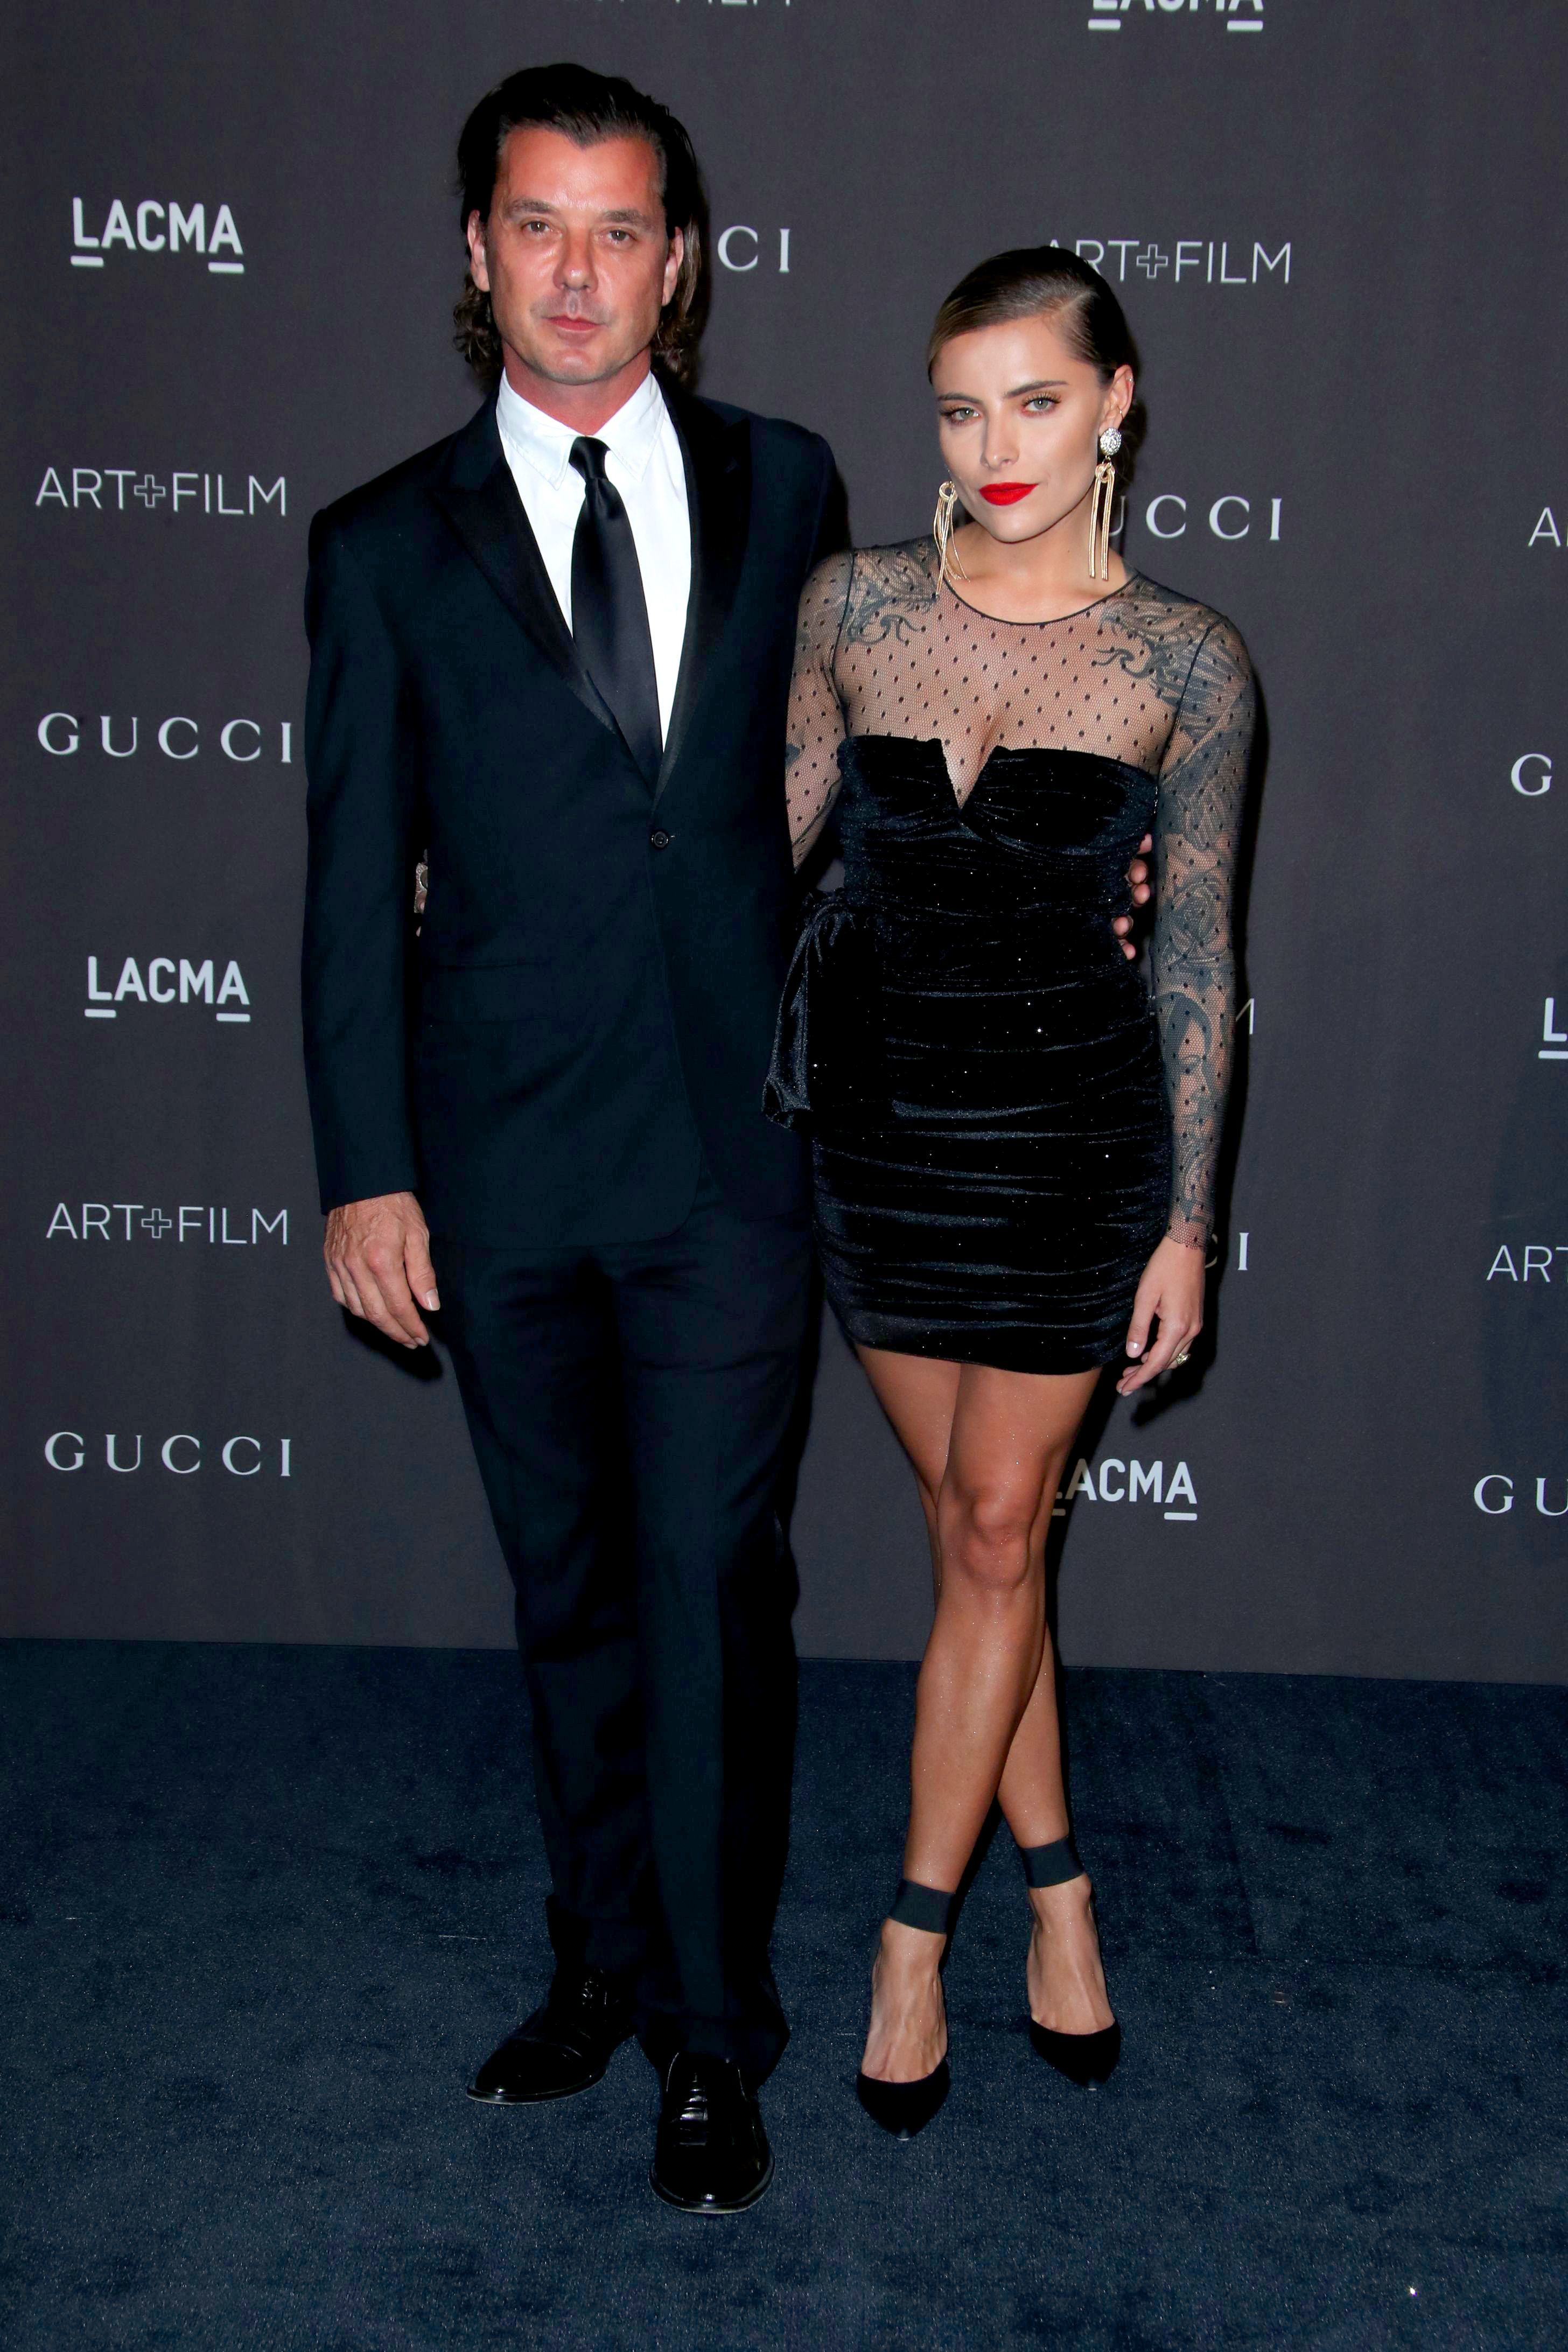 Gavin Rossdale and Sophia Thomalla attend the LACMA Art + Film Gala presented by Gucci in Los Angeles on Nov. 3, 2018.